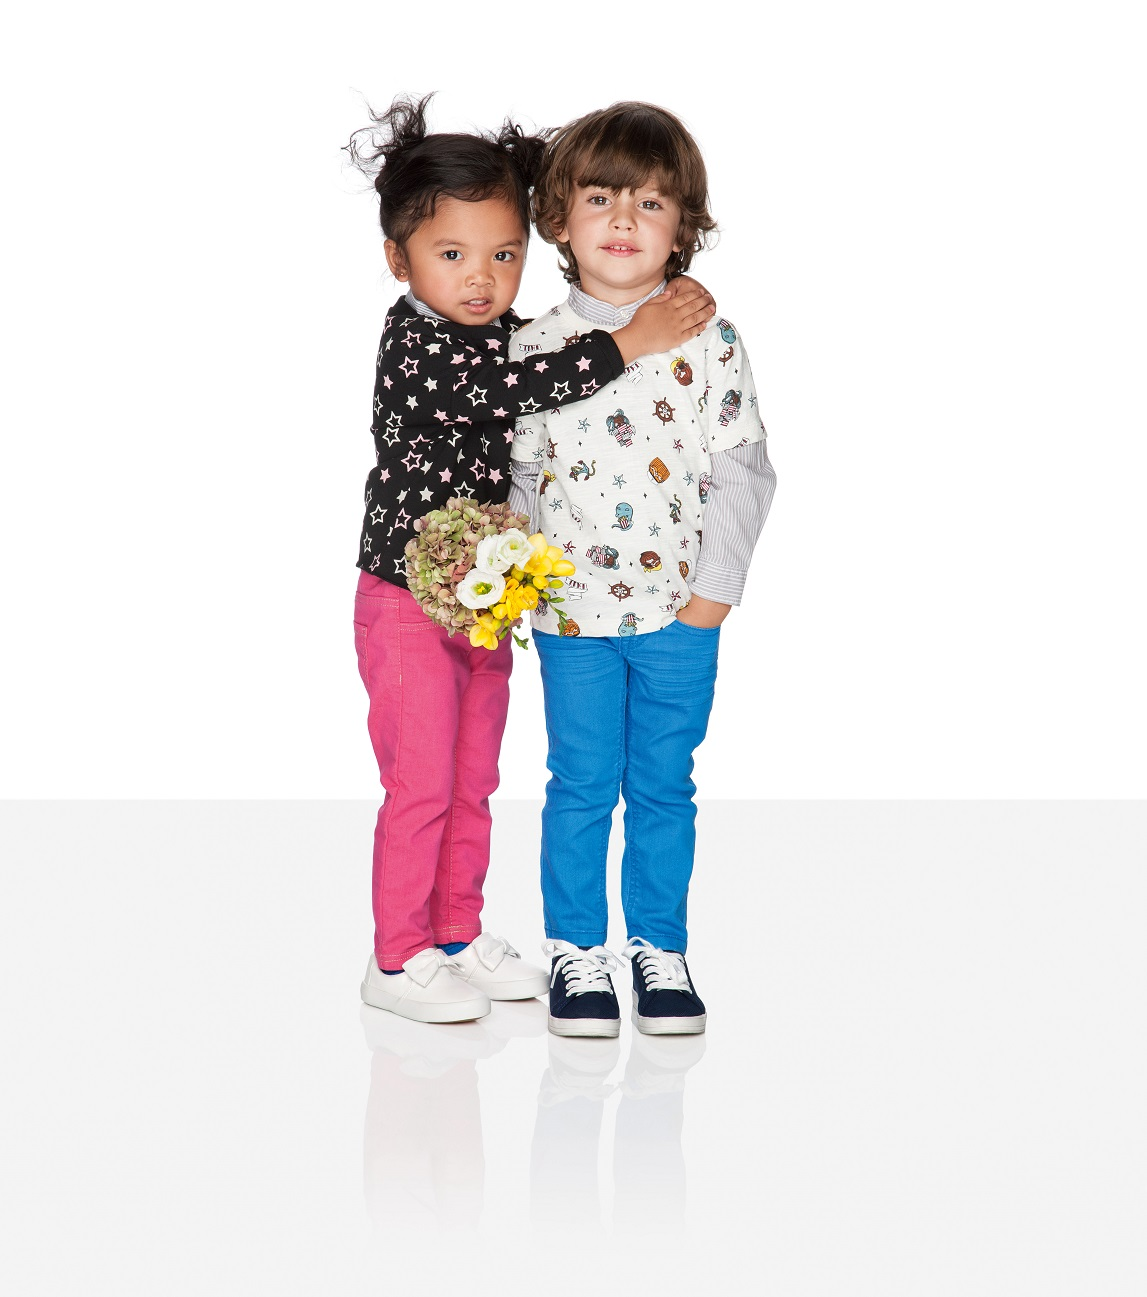 Spring 18 Kids Campaign by Oliviero Toscani (1)